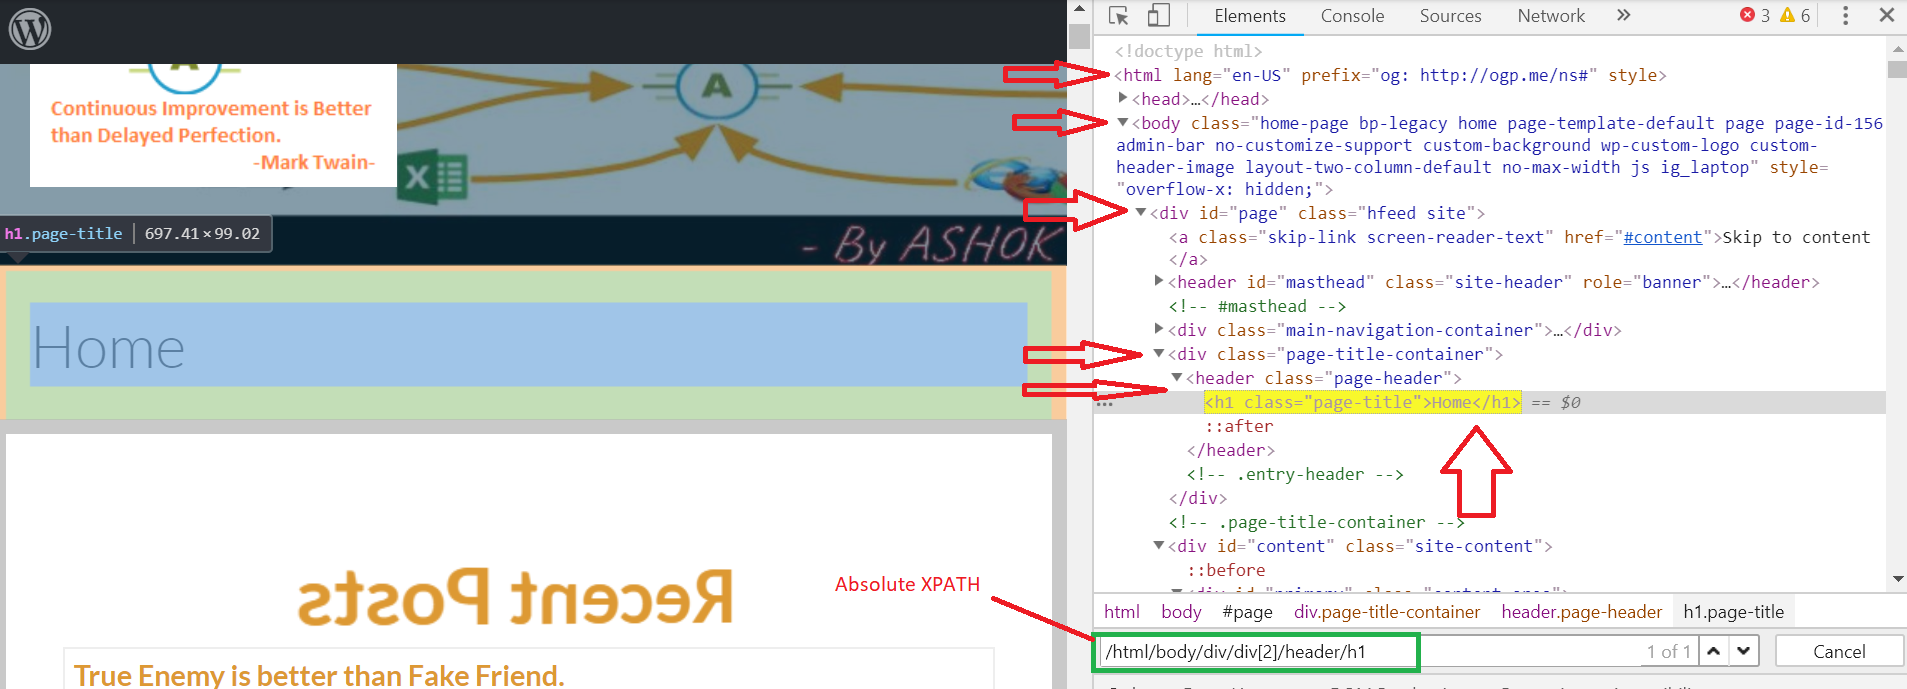 Selenium-6 || XPath is the best way to locate web elements